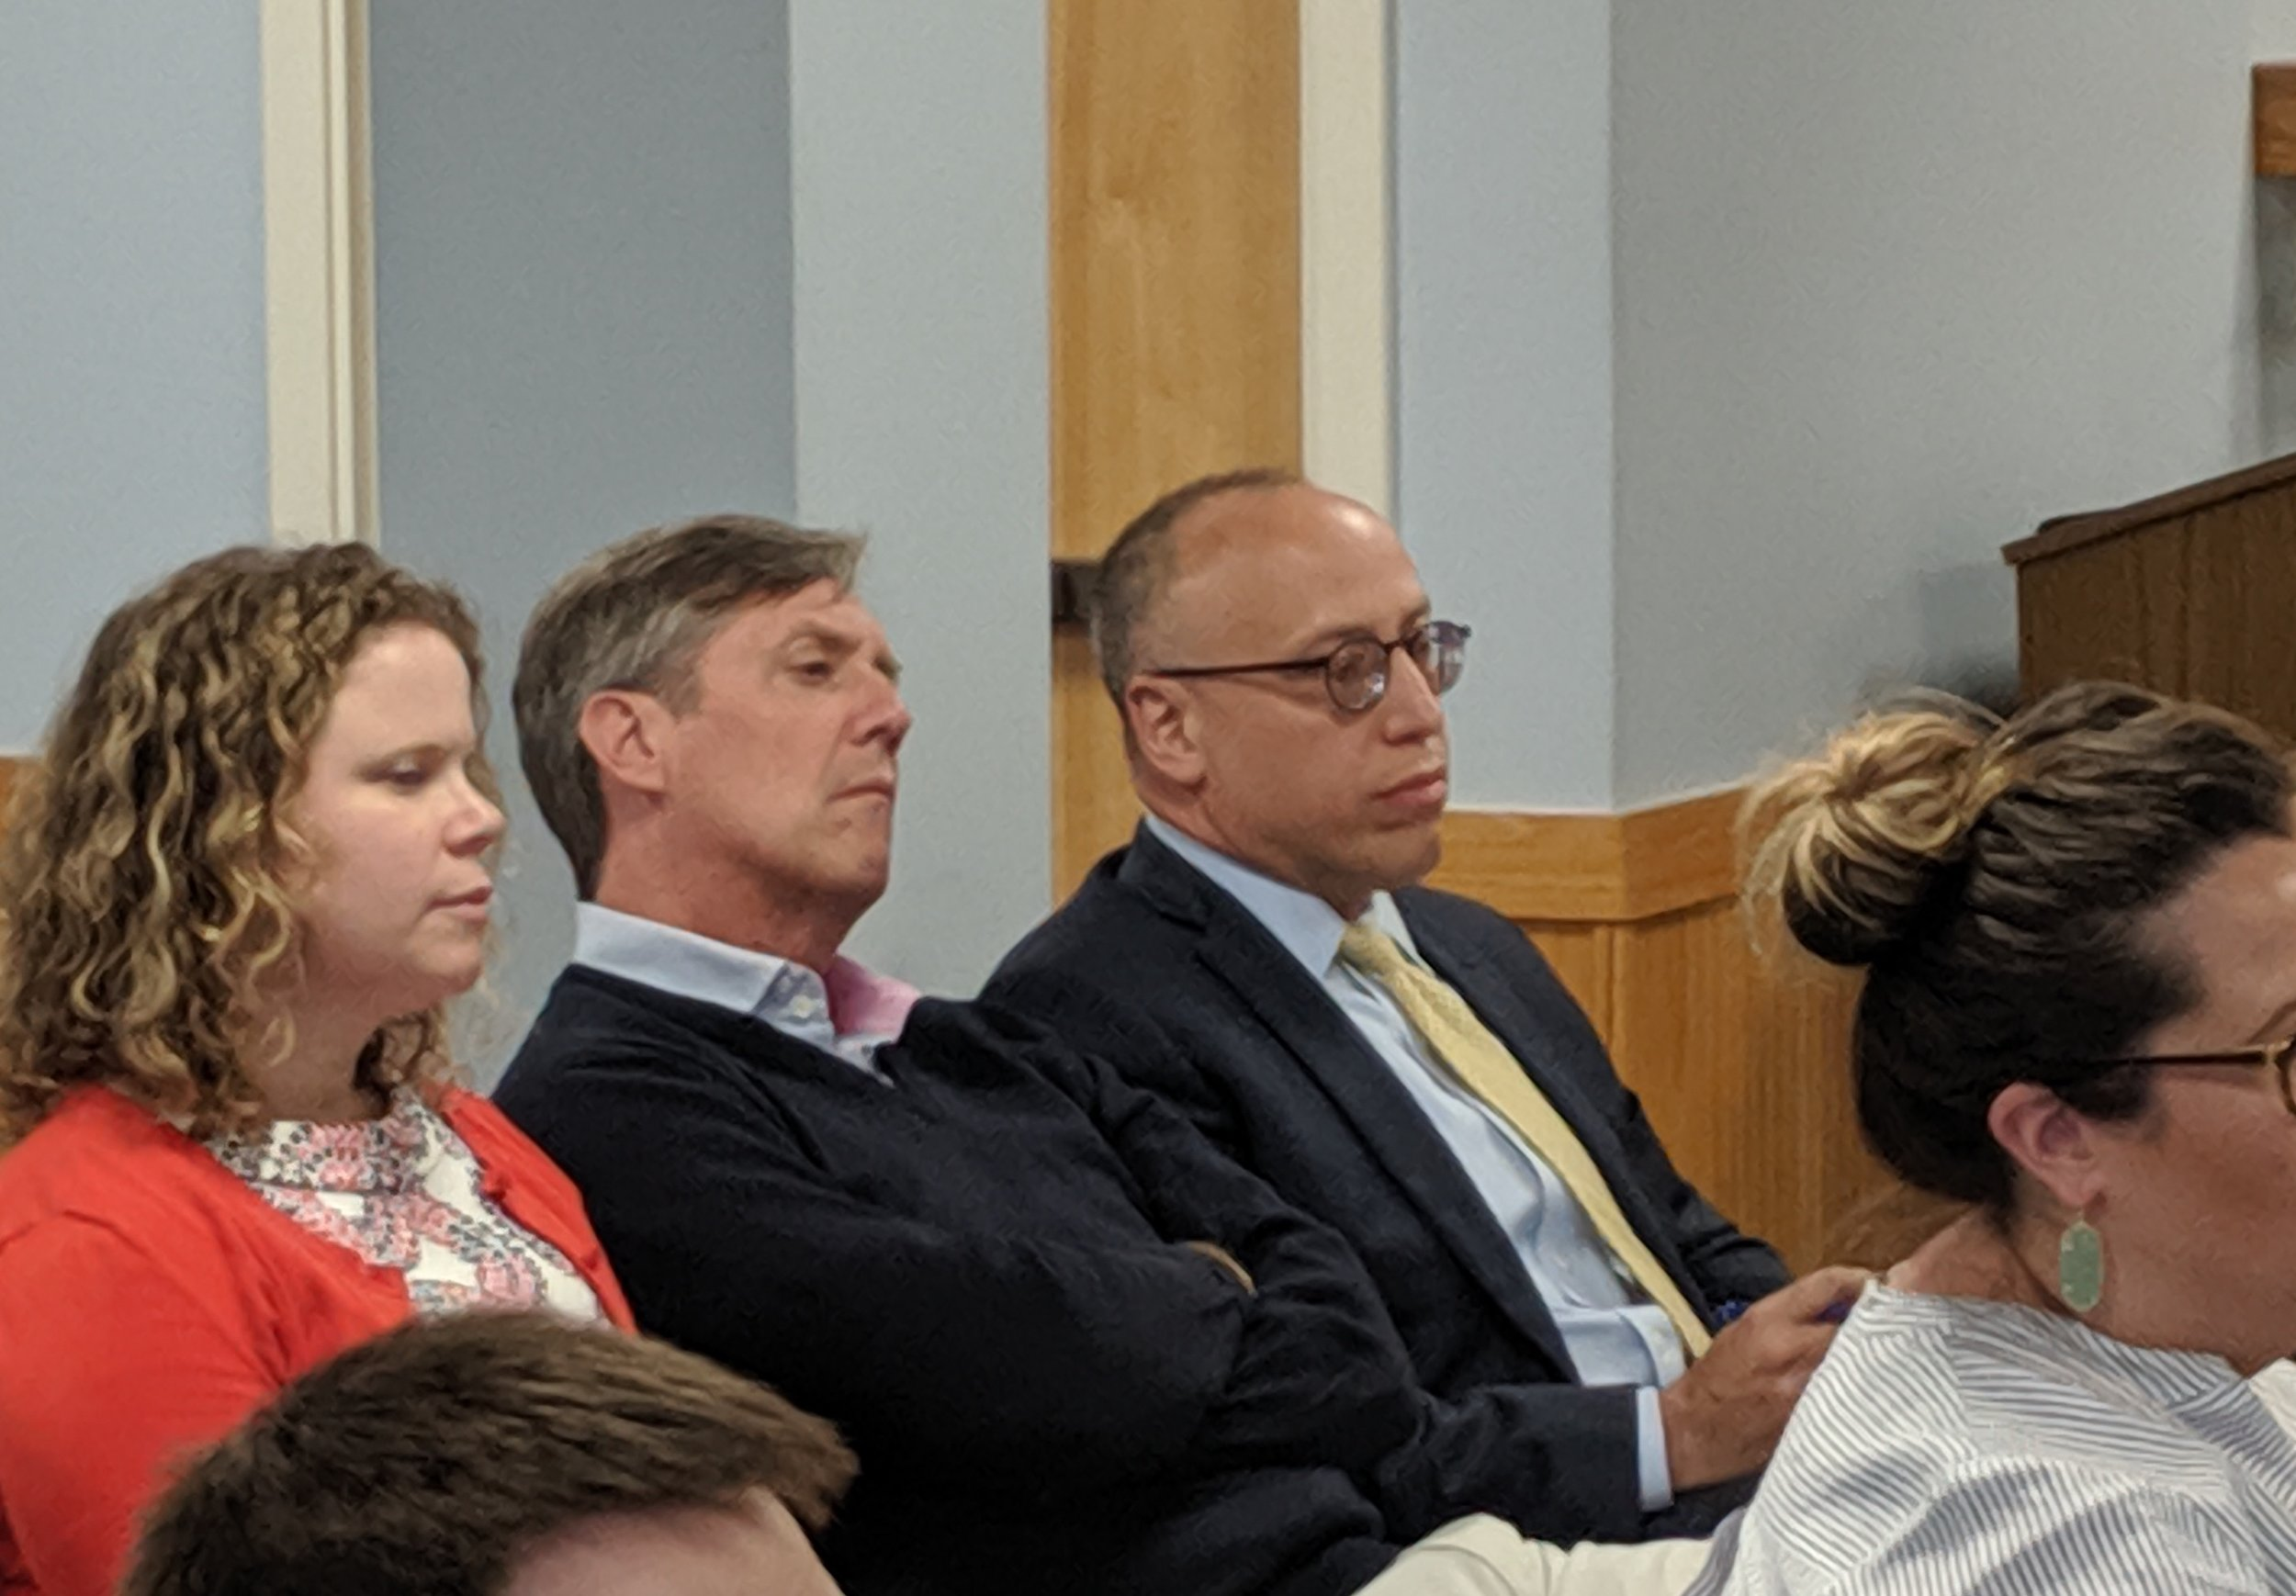 Jeff Grybowski, right, co-CEO of Ørsted, formerly Deepwater Wind, at the May 28 PUC hearing.